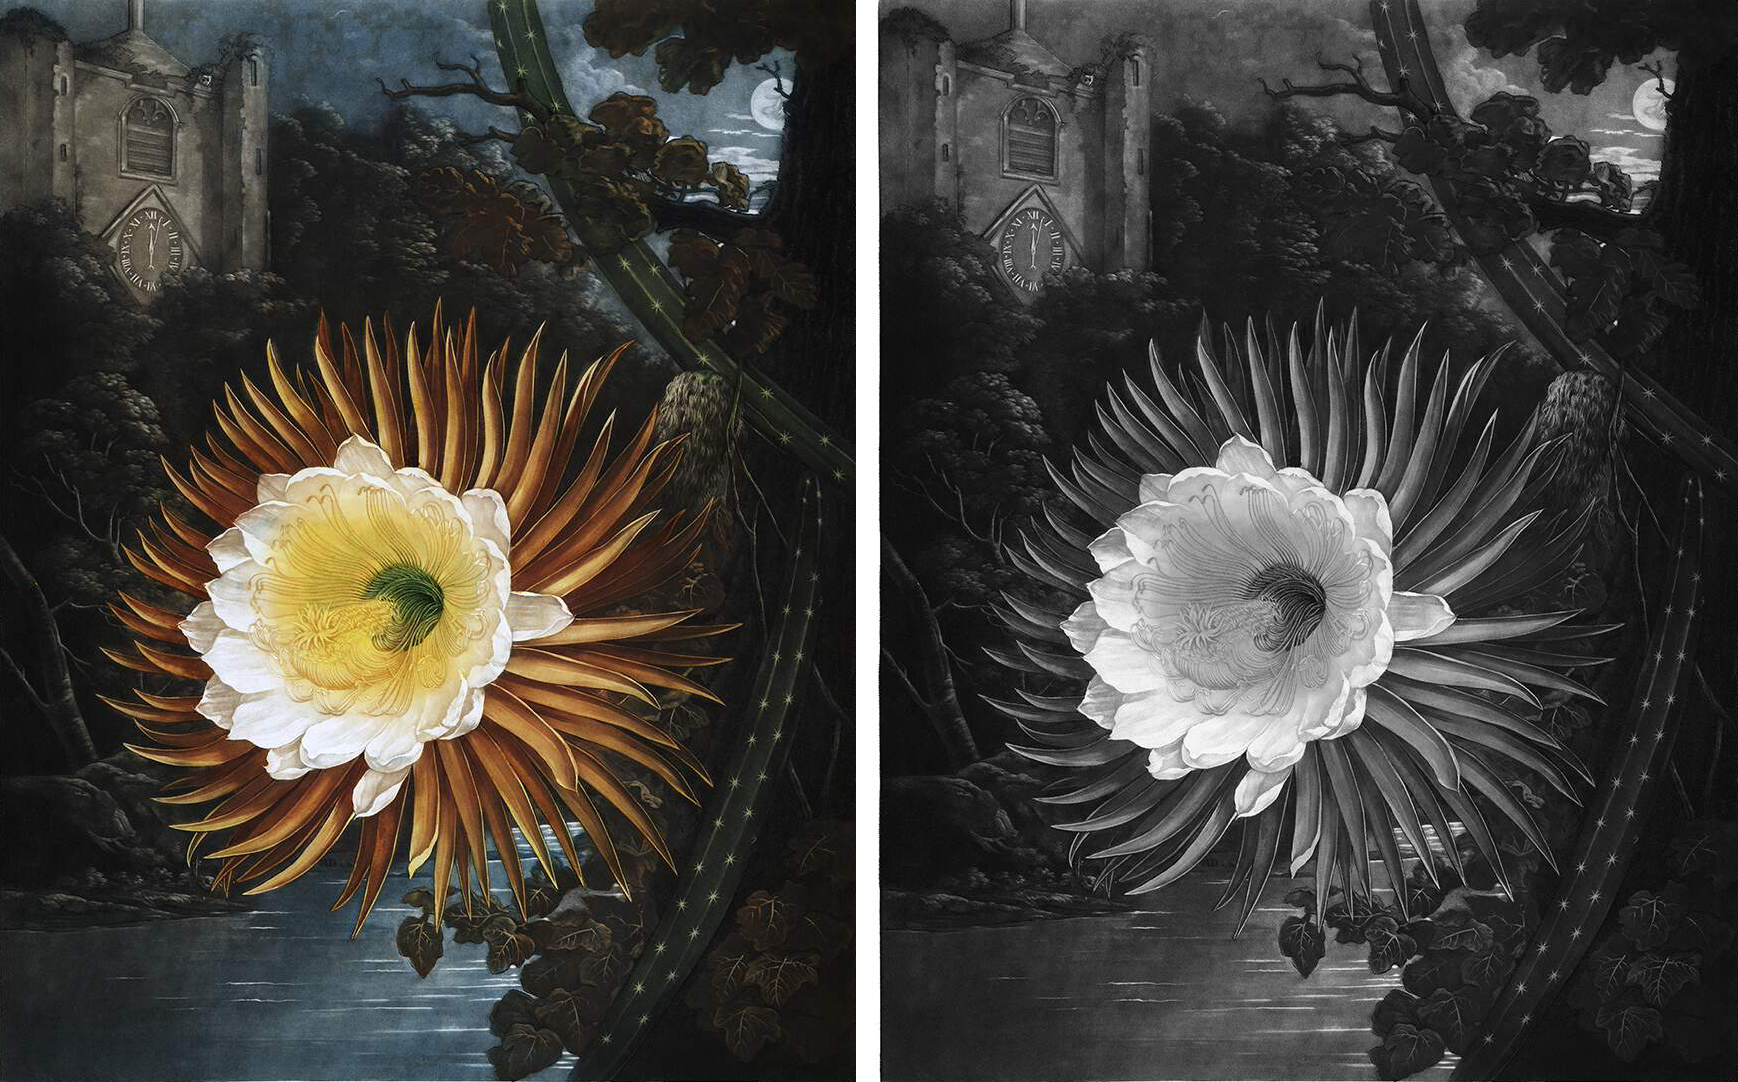 A side by side comparison of an illustration and its grayscale form